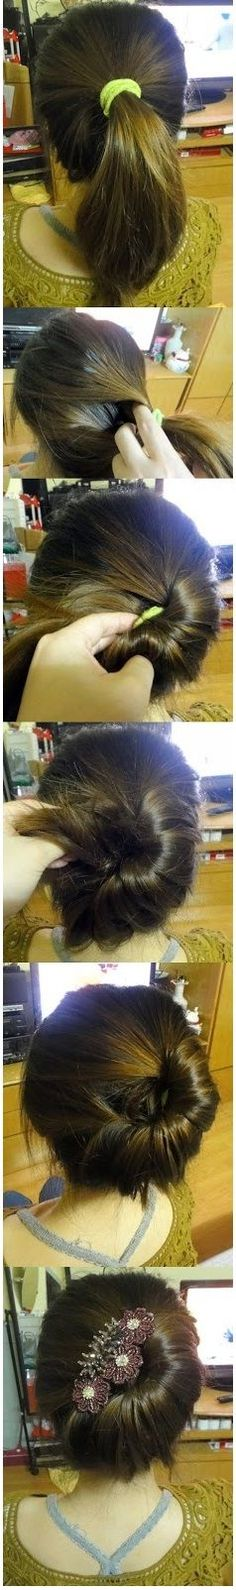 Chingnon Hairstyle - DIY Hairstyle Ready for you Hairstyle